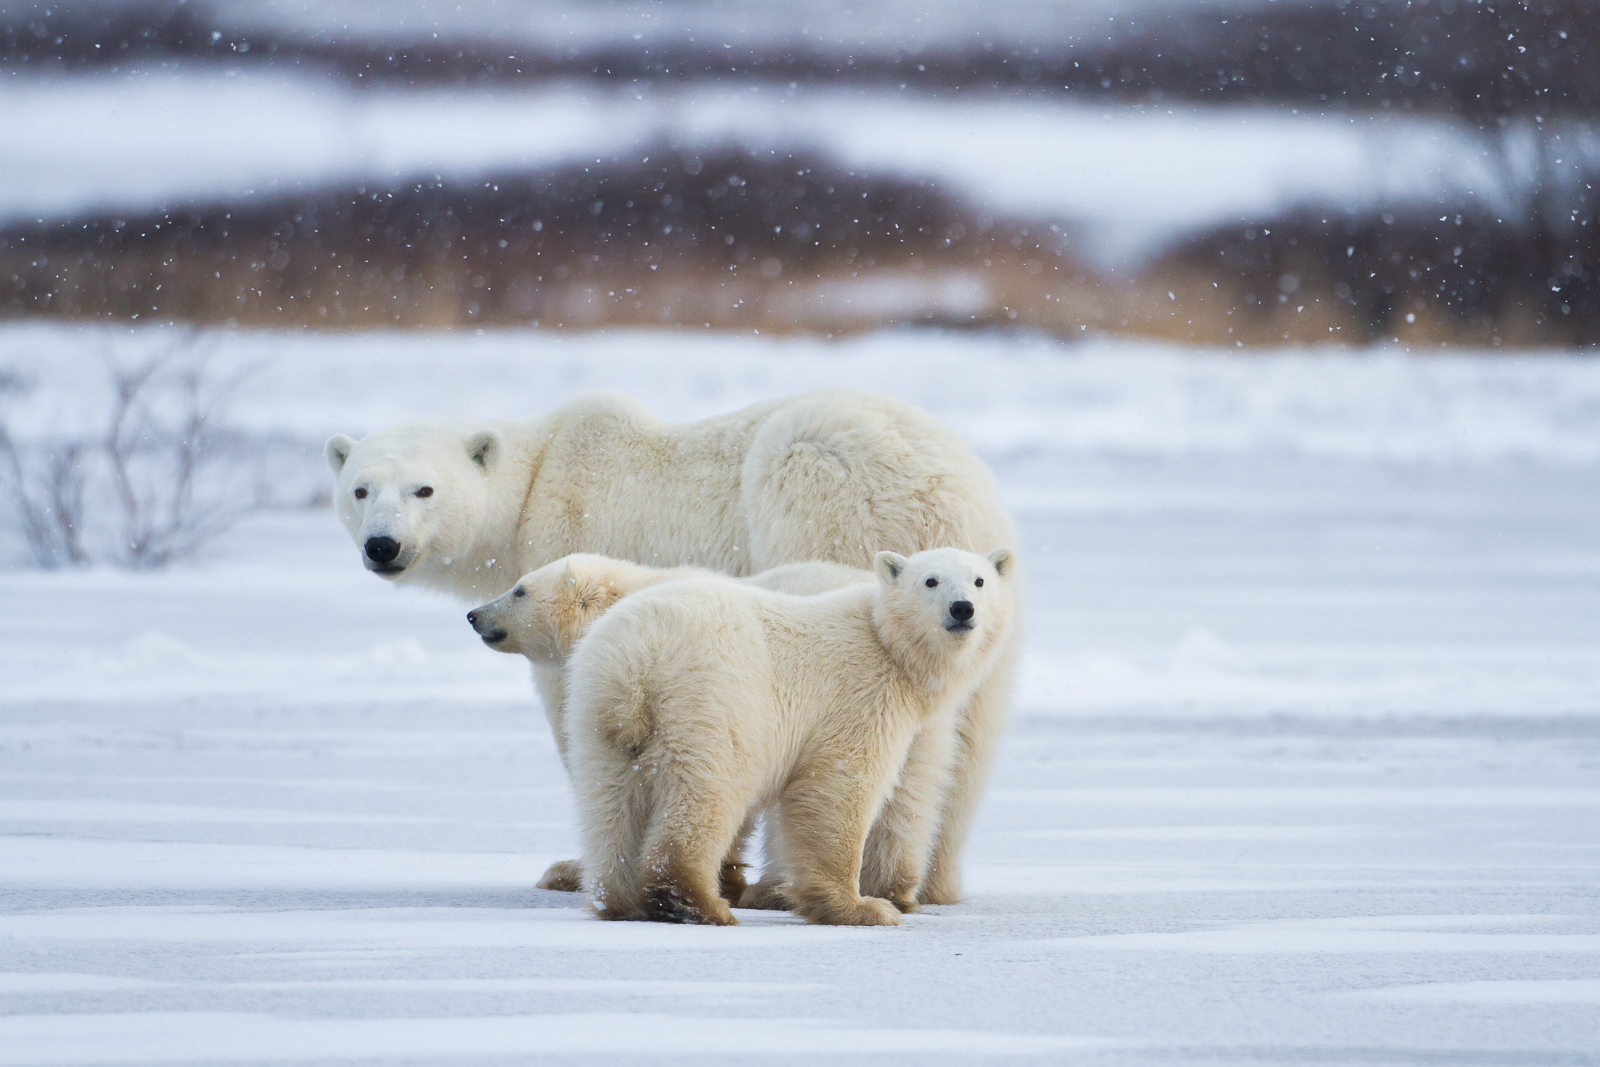 Polar Twins,Canada,Horizontal,Ursus maritimus,cub,polar bear,wildlife,winter,young, photo